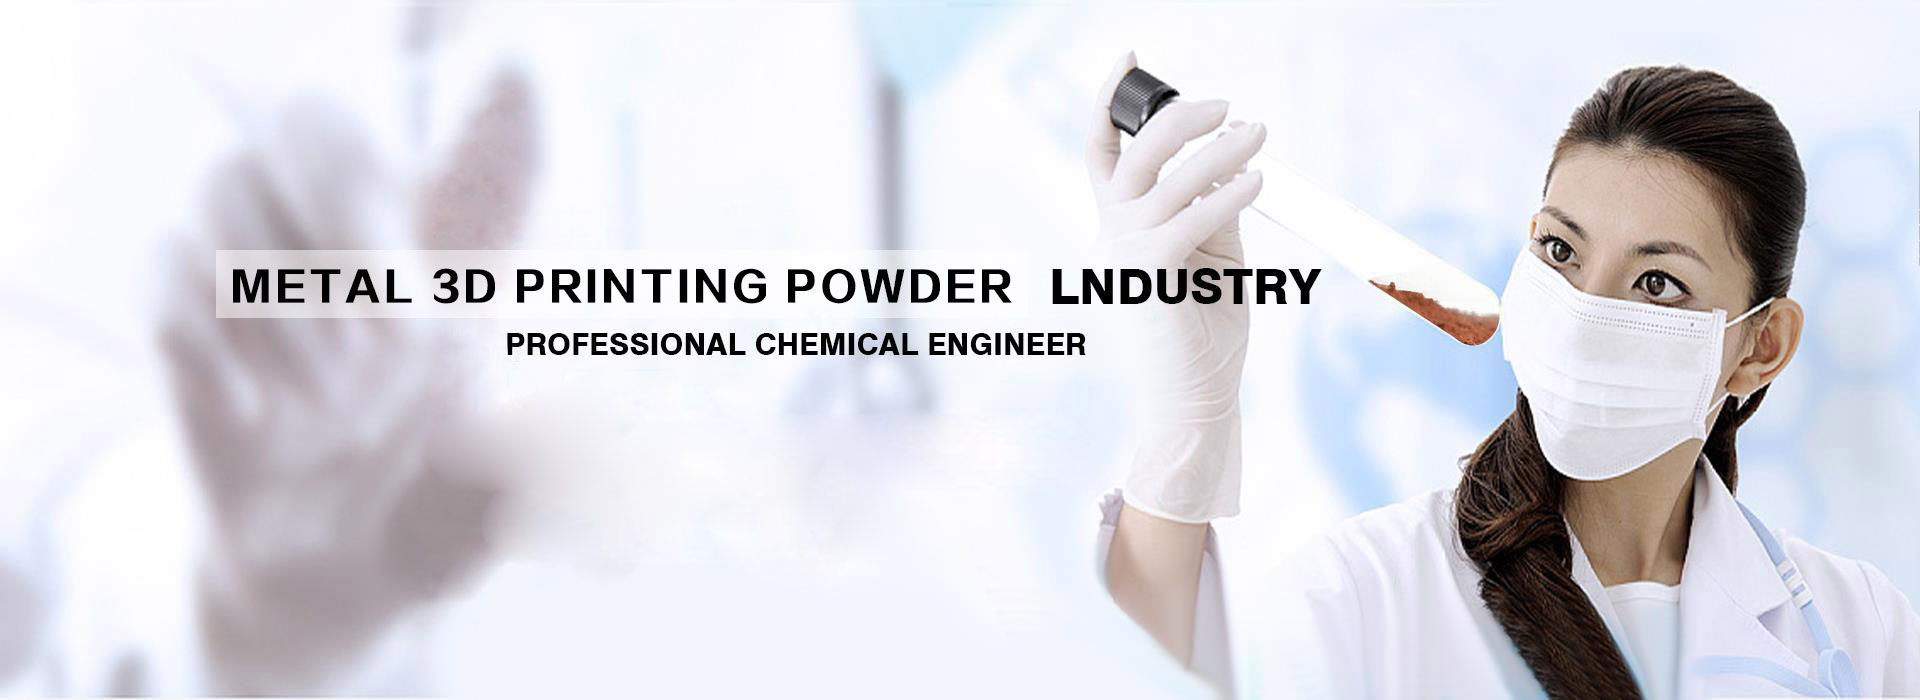 Metal 3d priting powder supplier